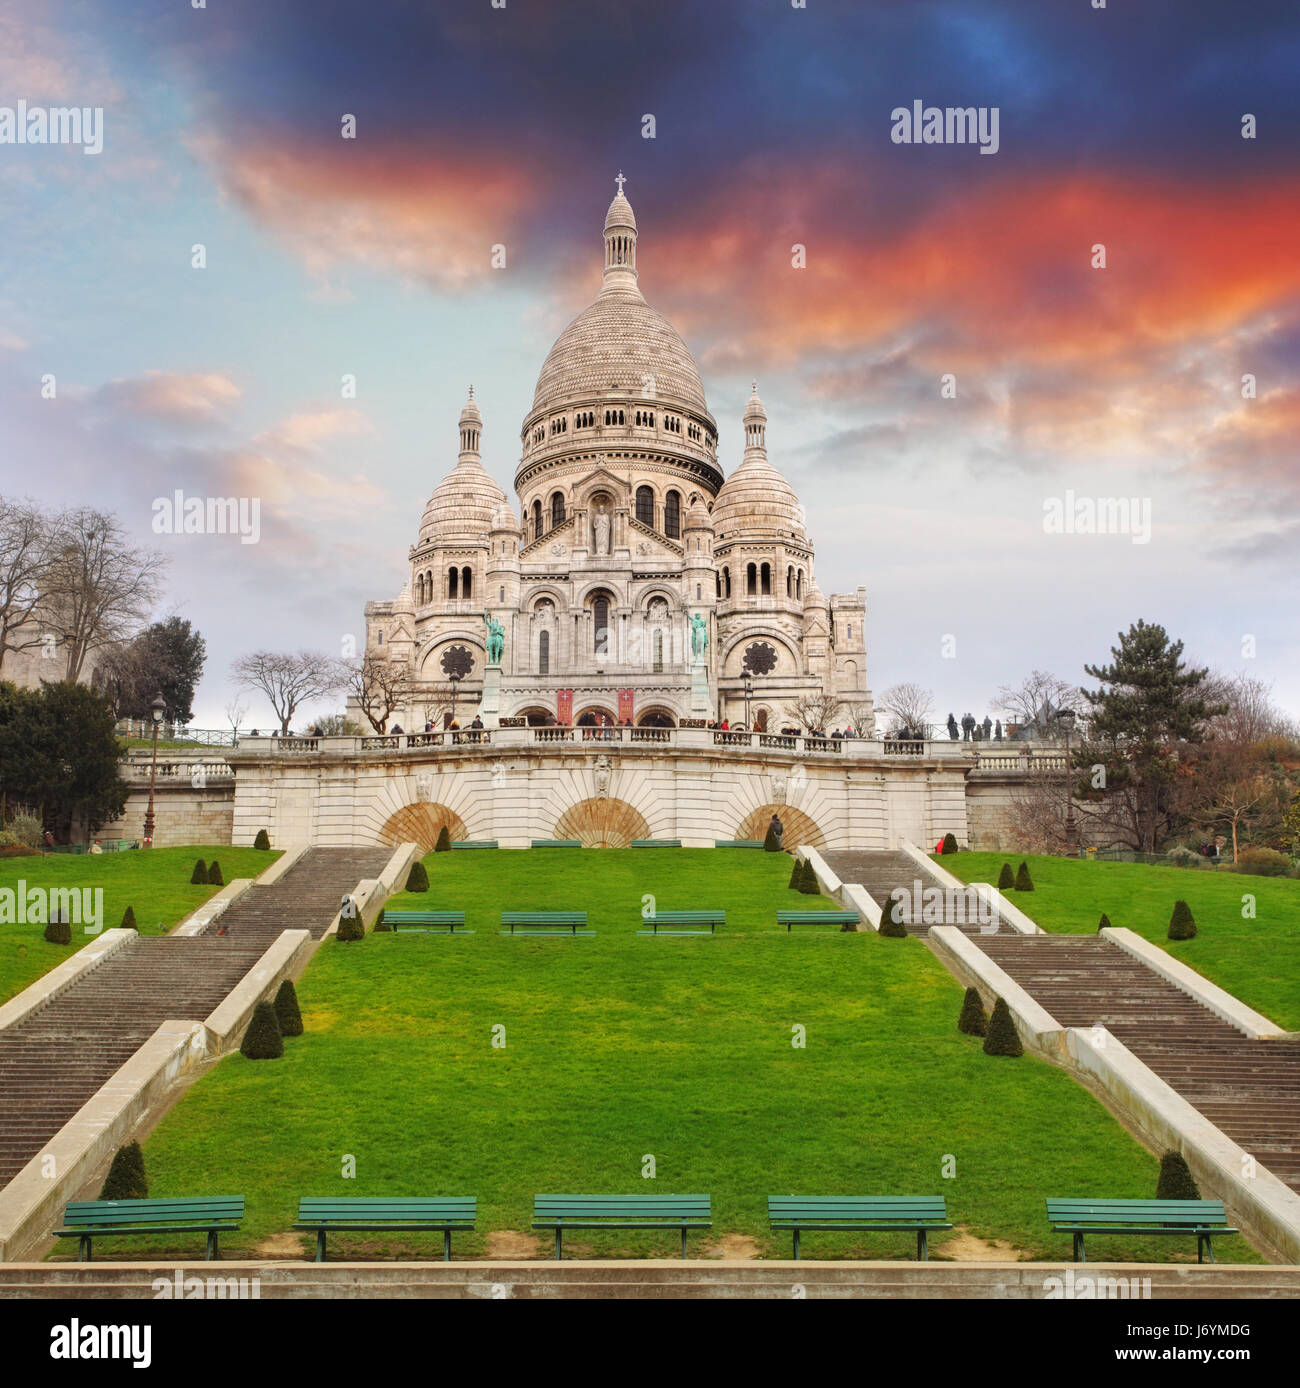 Sacre Heart Basilica of Montmartre in Paris, France - Stock Image